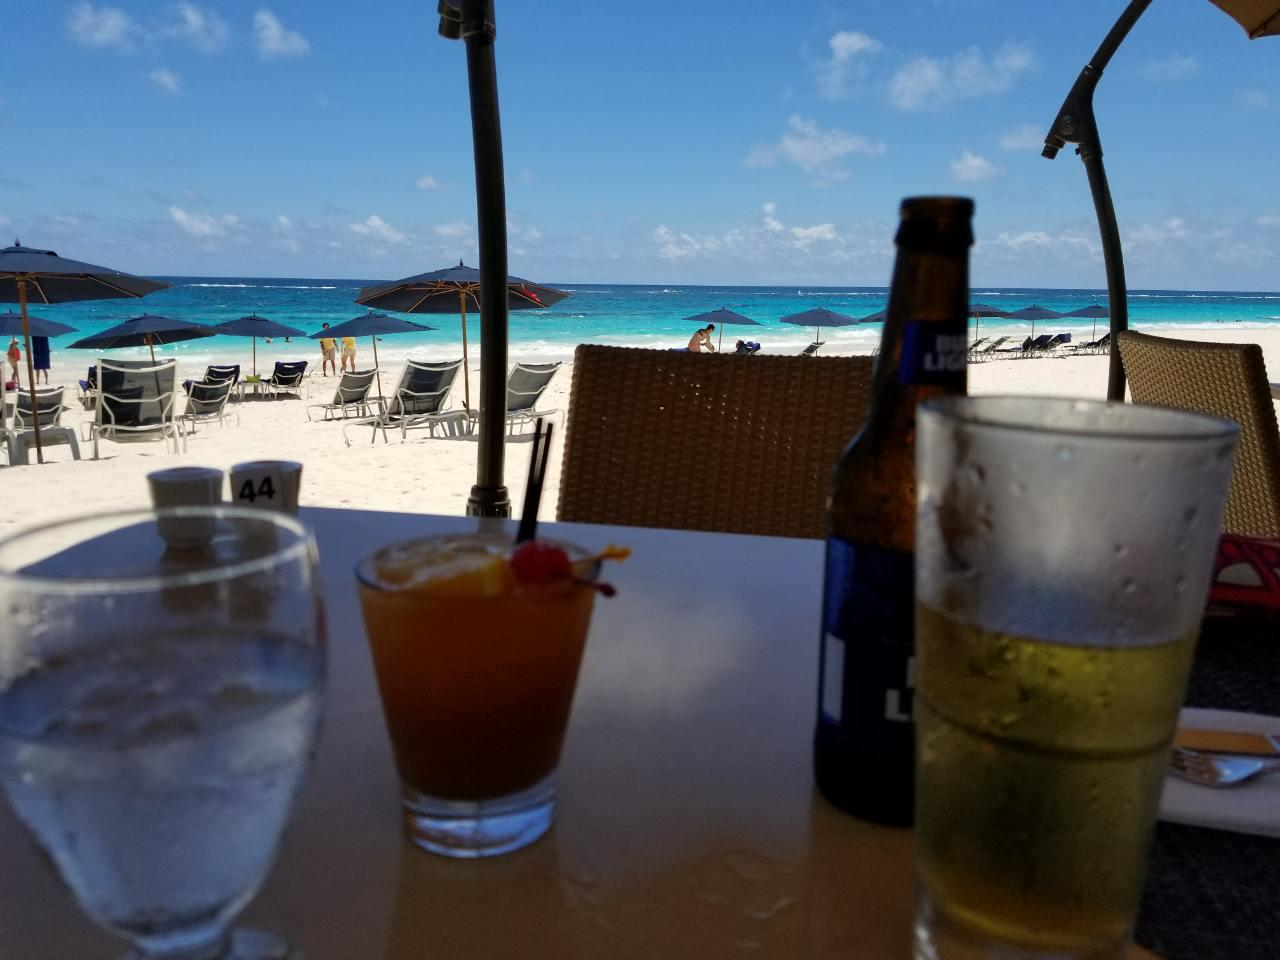 Elbow Beach in Paget Hotel Rates Reviews on Orbitz